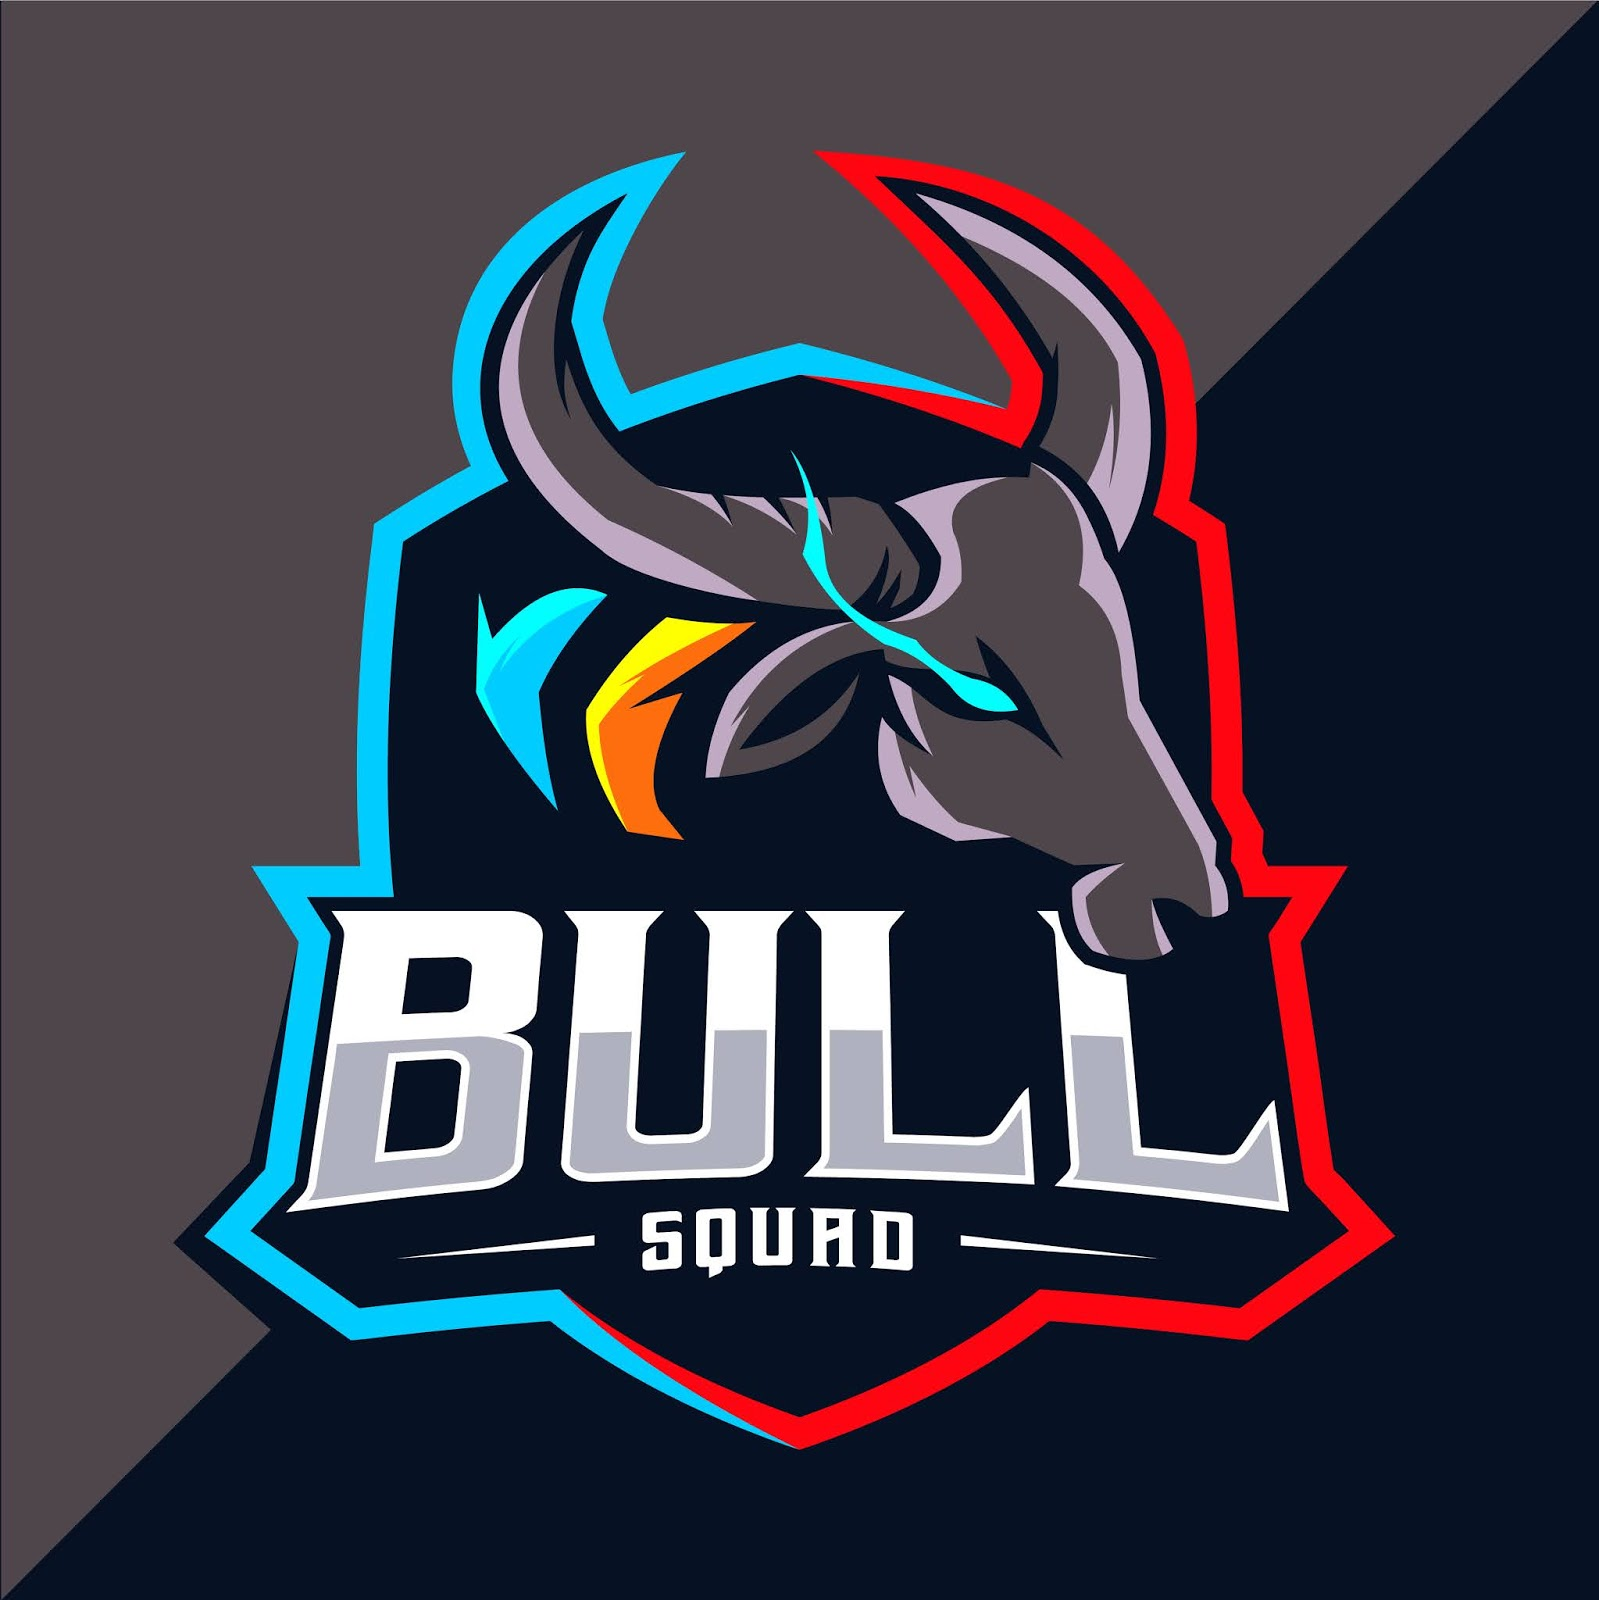 Bull Mascot Esport Logo Funny Free Download Vector CDR, AI, EPS and PNG Formats